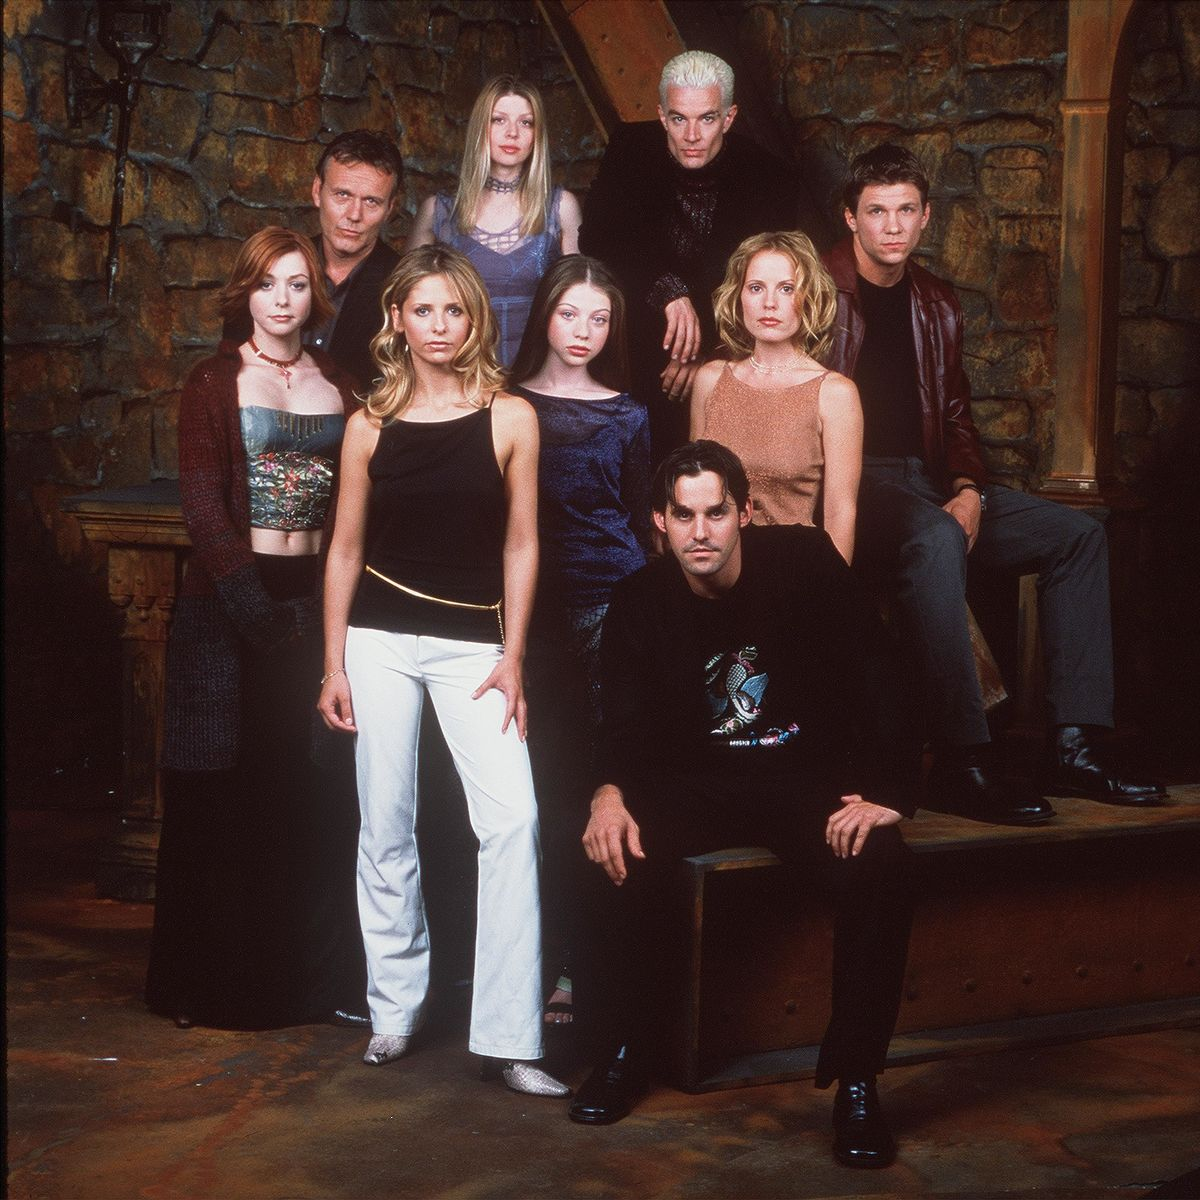 The 'Buffy The Vampire Slayer' Reboot May Follow A New Slayer